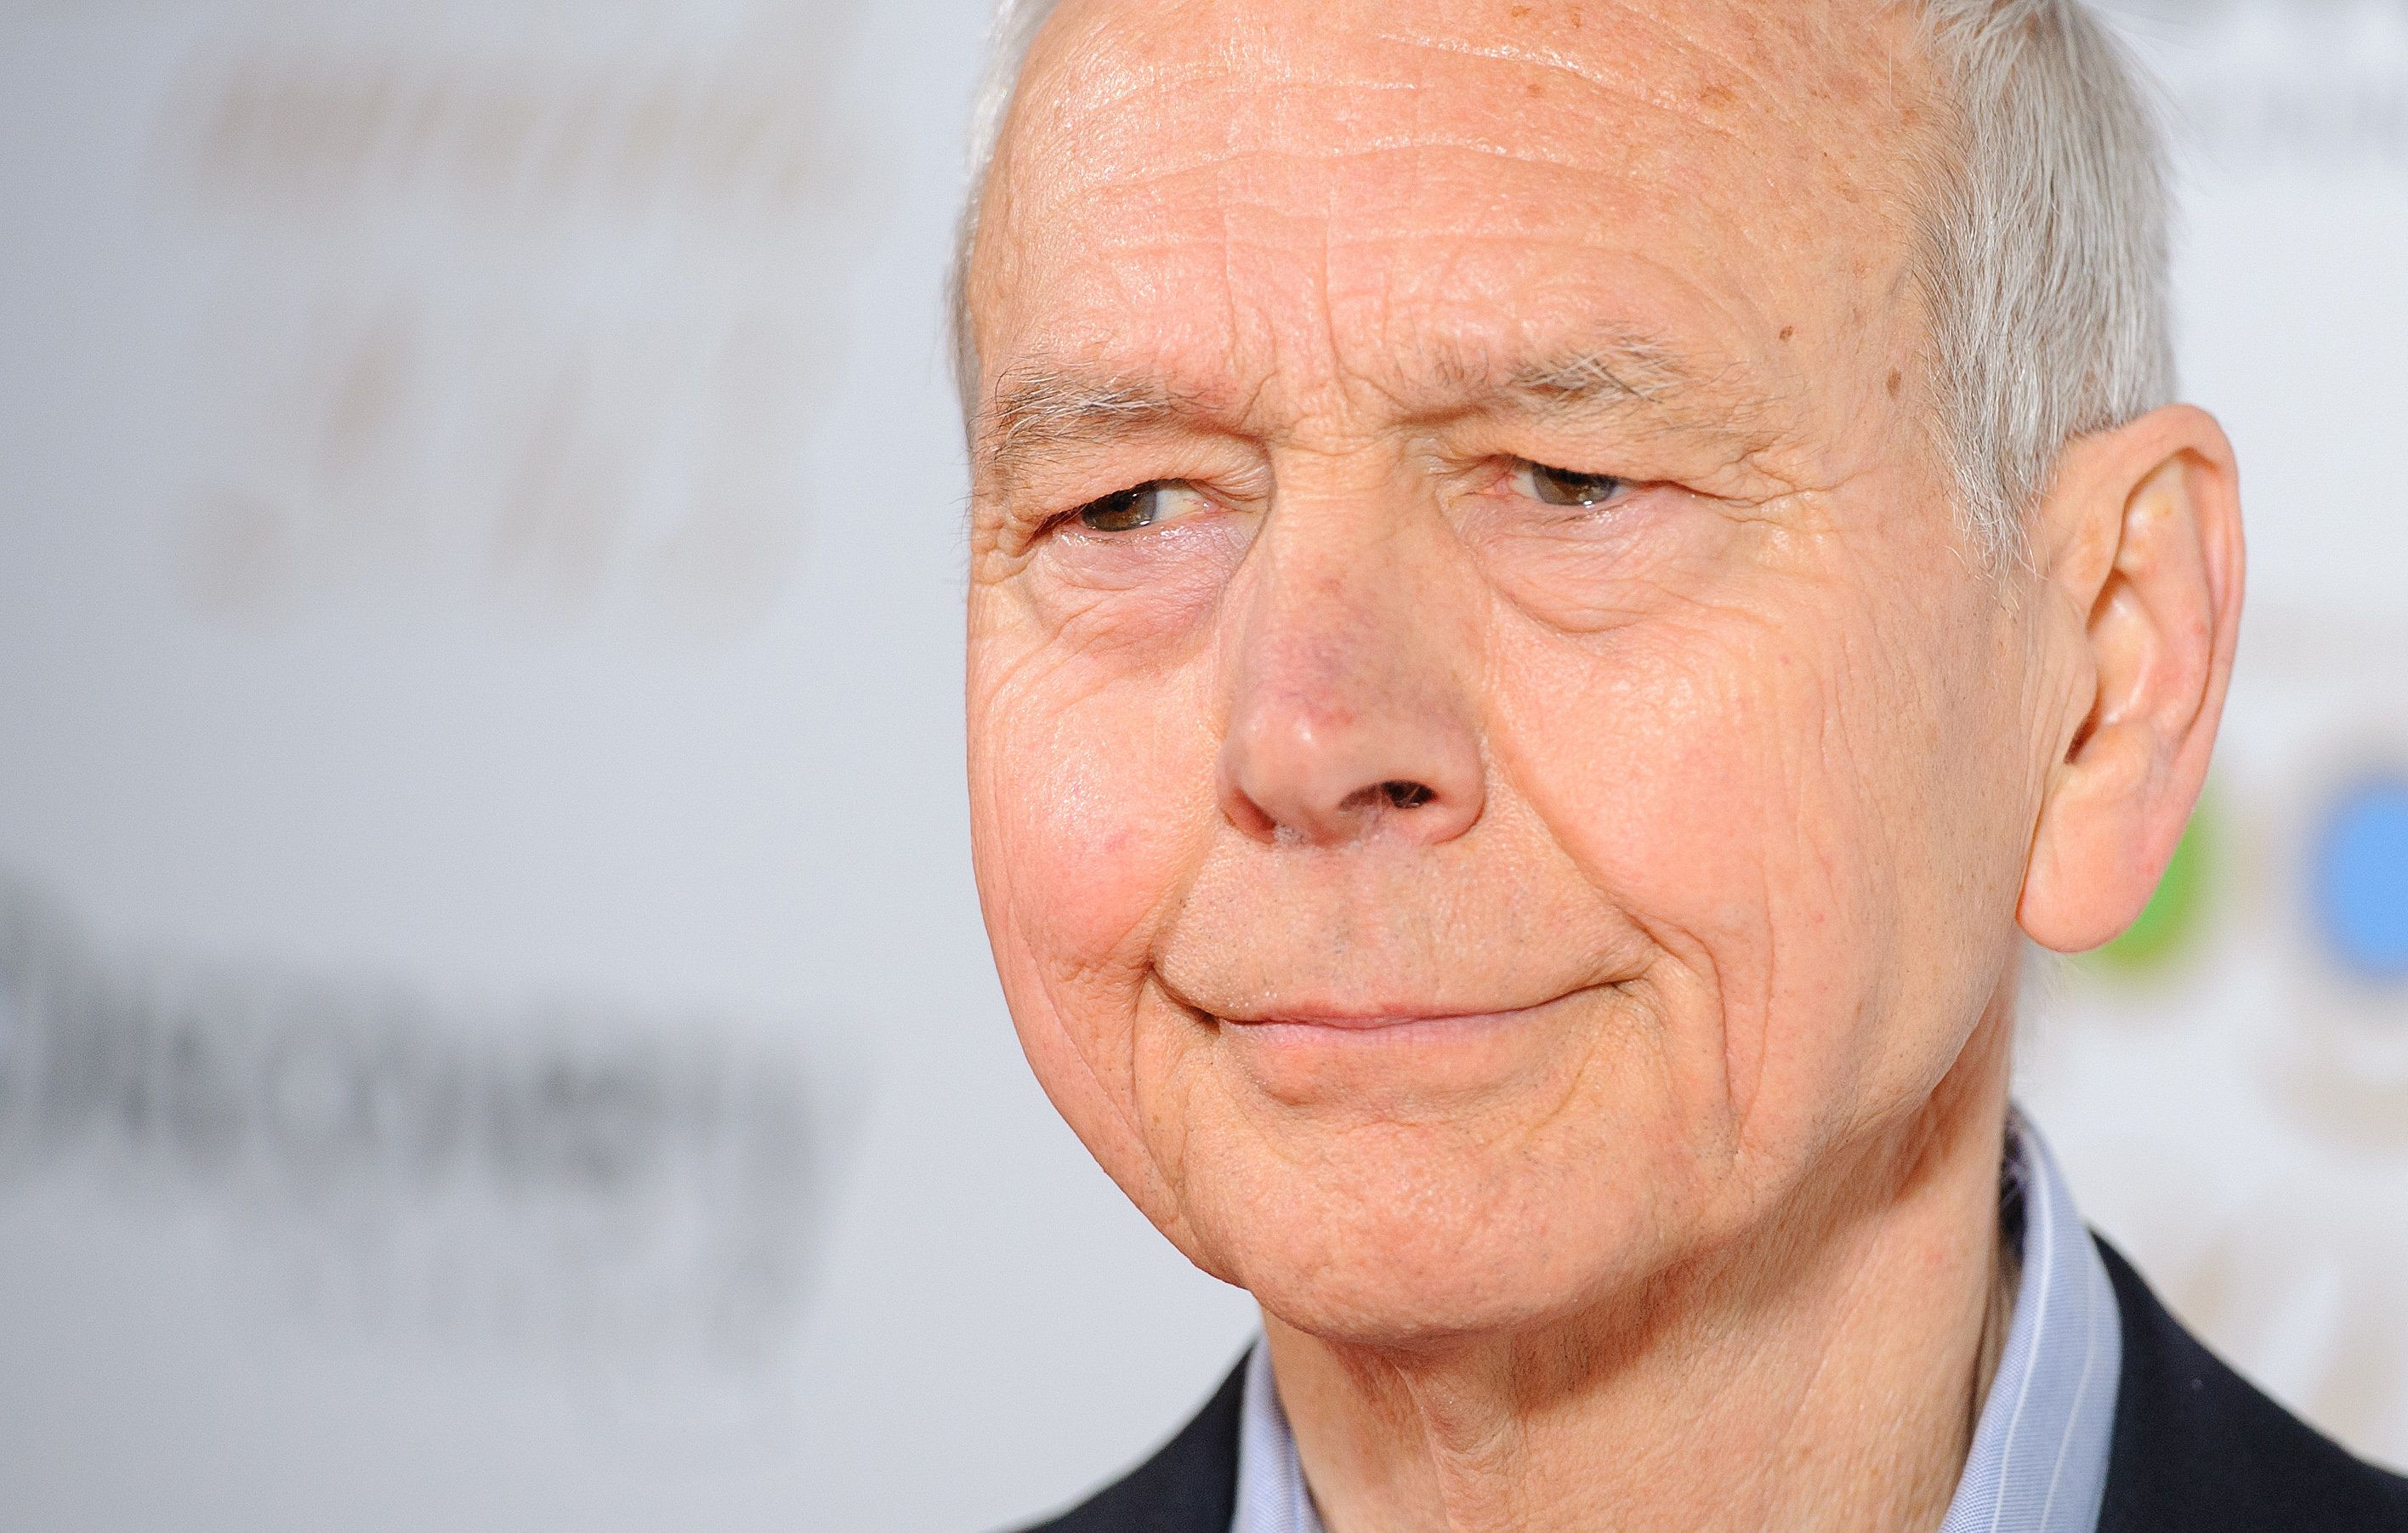 John Humphrys Slammed Over 'Desperately Disabled' Question About Stephen